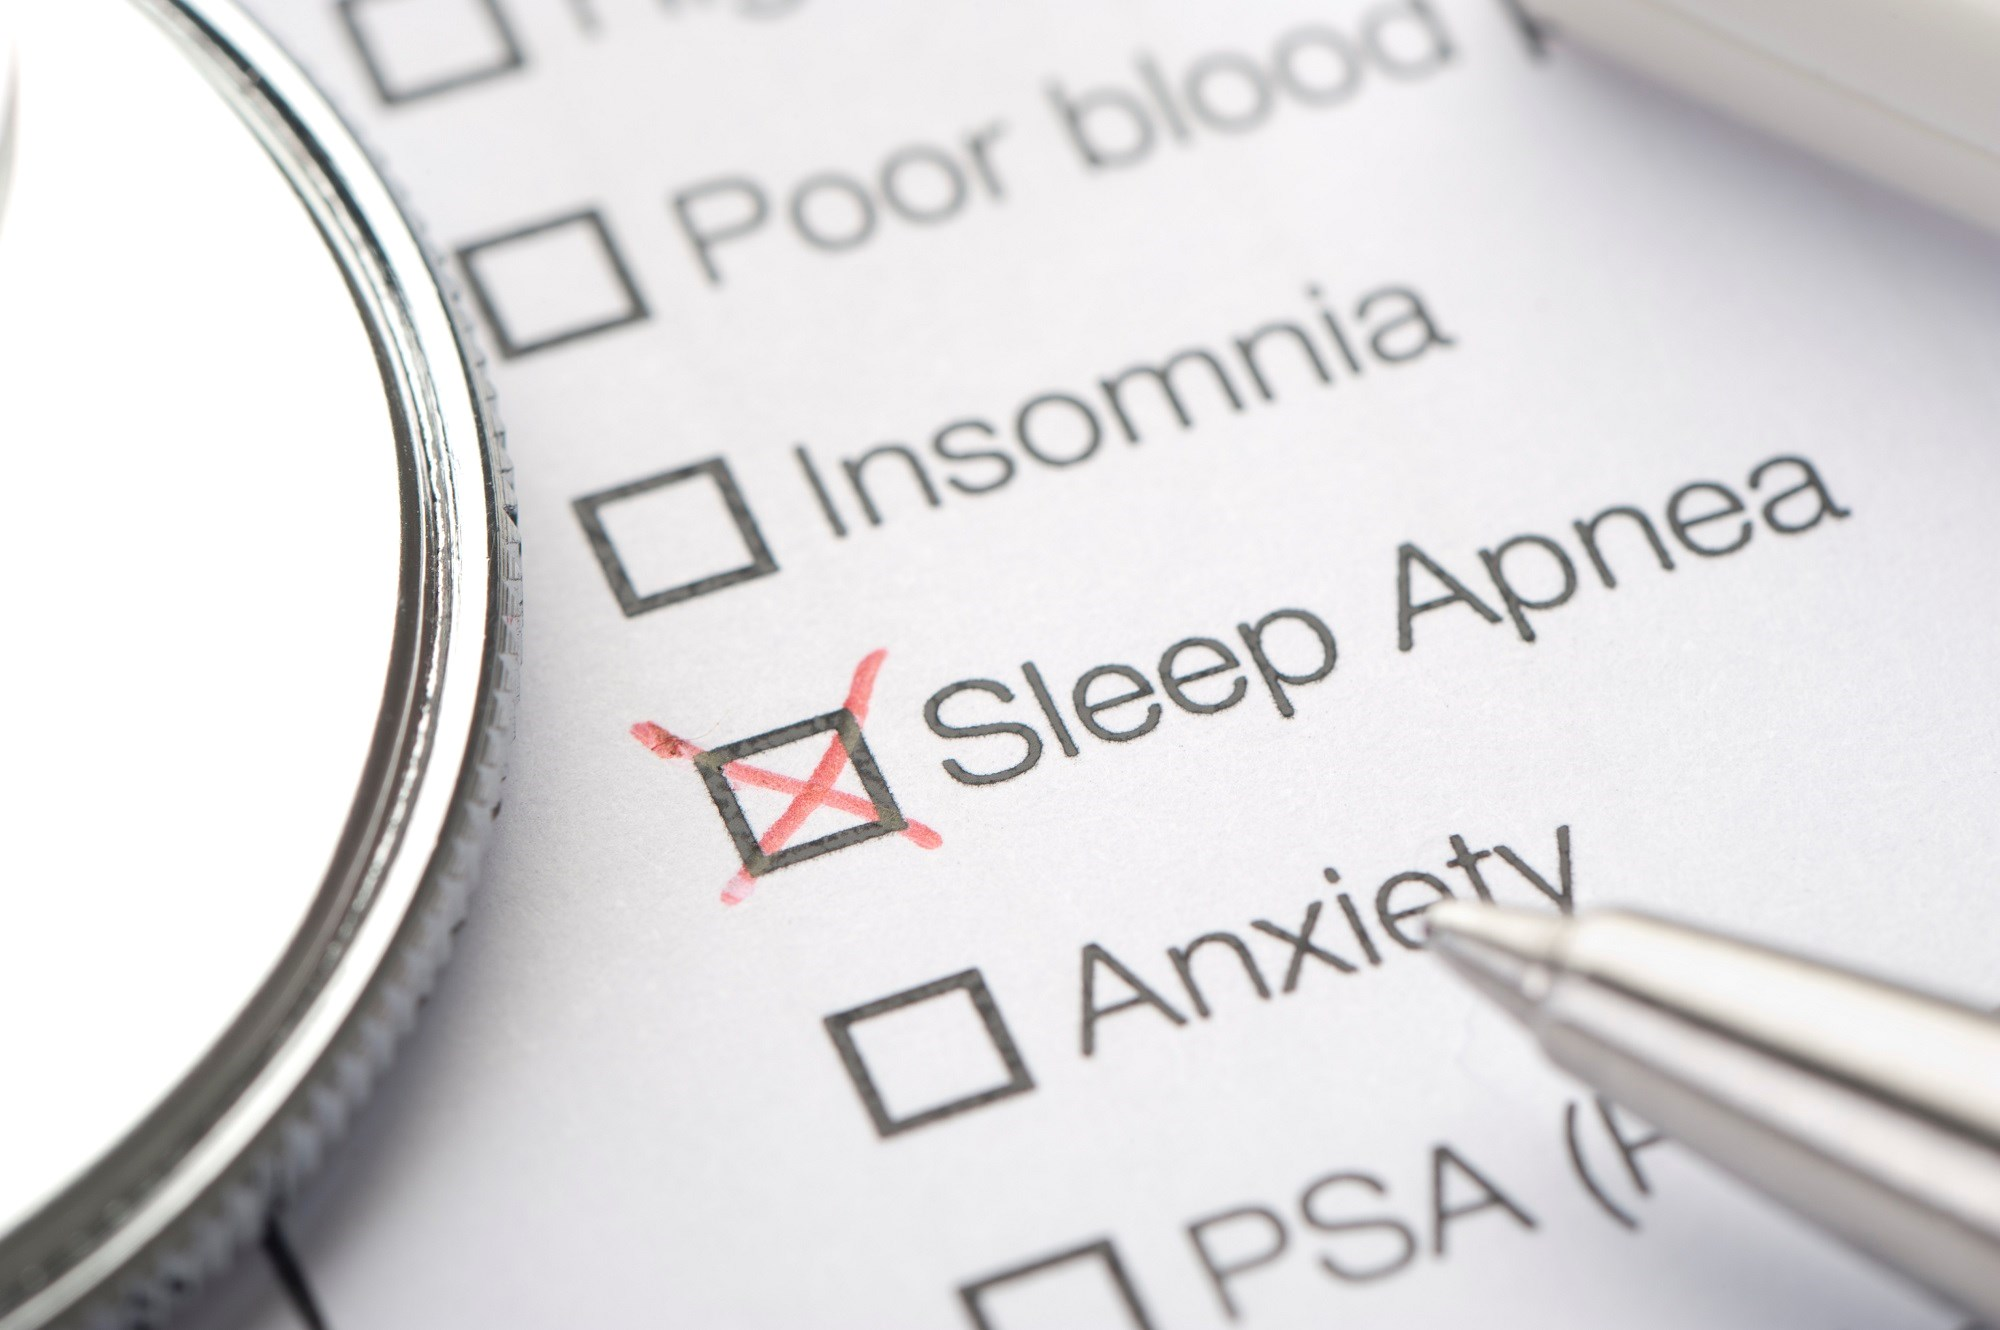 High Prevalence of Sleep Apnea in Patients With Acromegaly